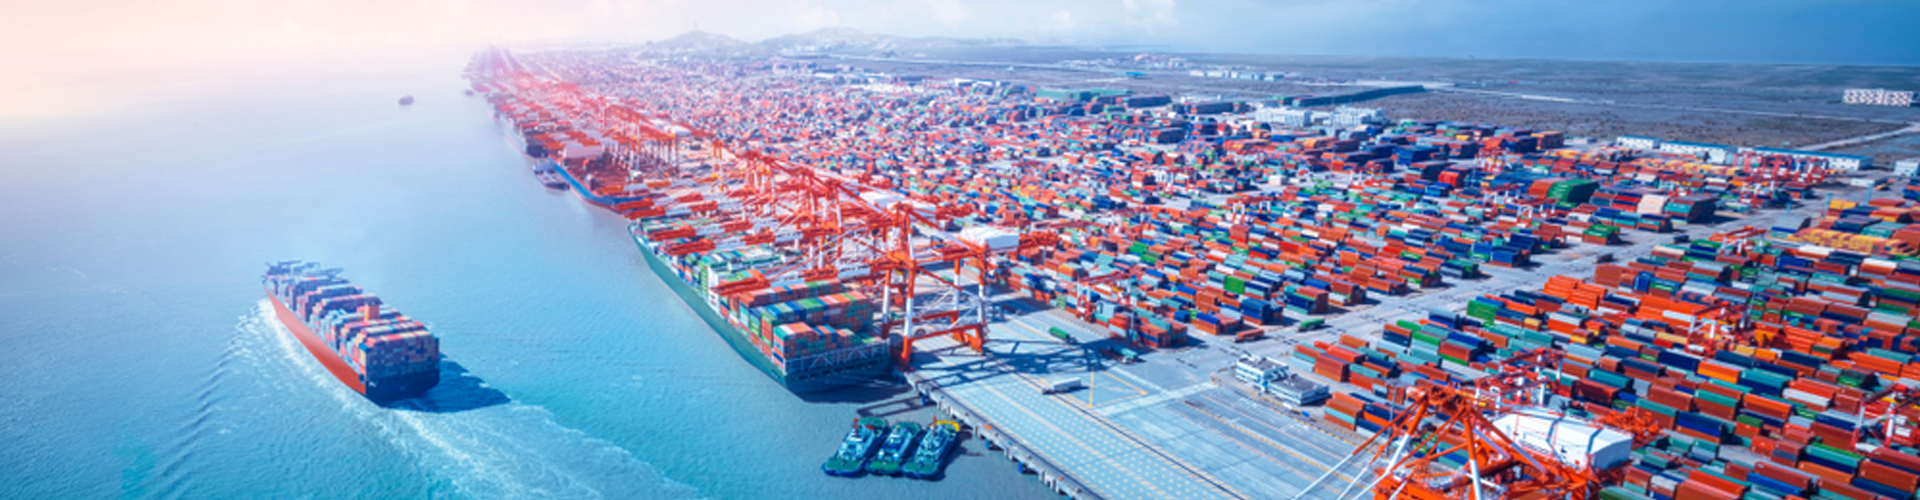 Webinar: Air quality challenges and strategies for ports